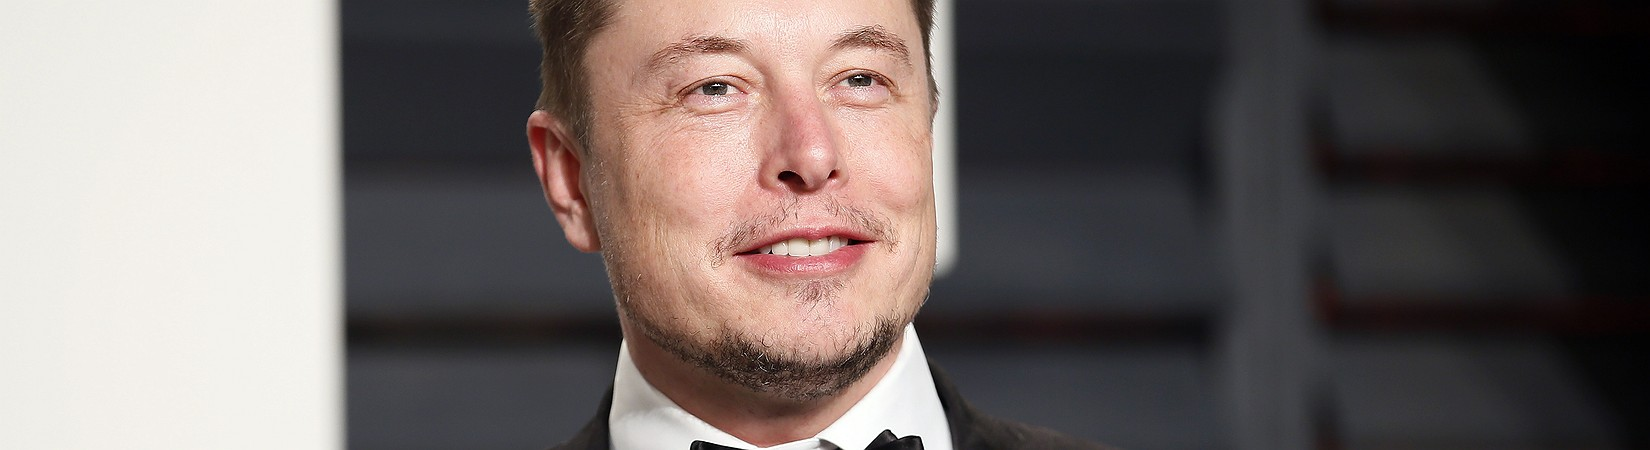 Elon Musk launches sci-fiesque start-up to link brains and computers